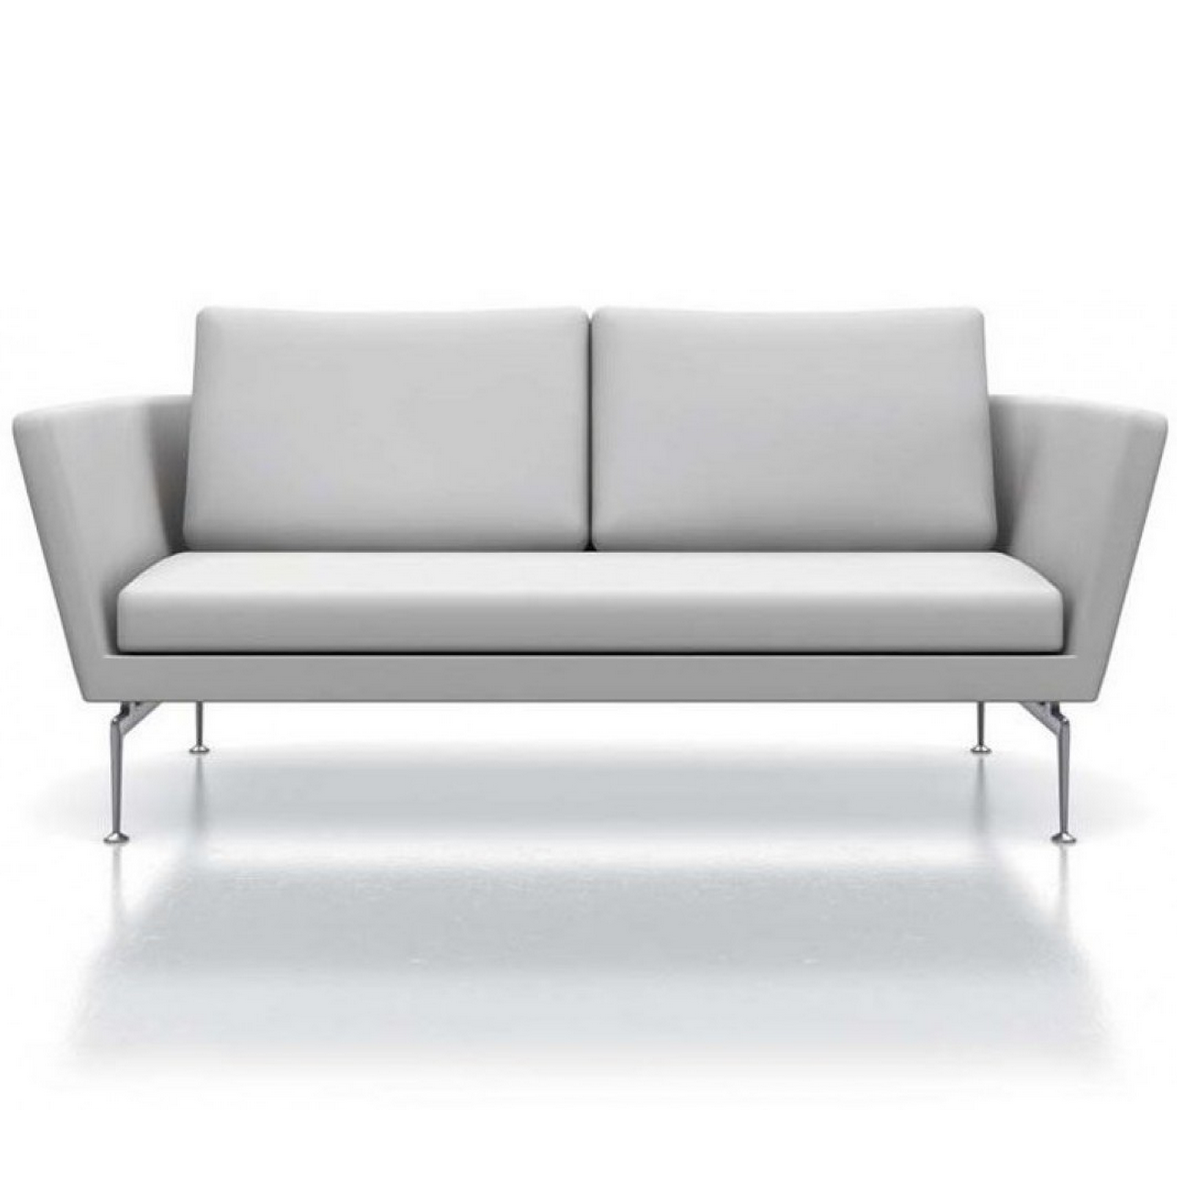 sofa vitra suita refil sofa. Black Bedroom Furniture Sets. Home Design Ideas